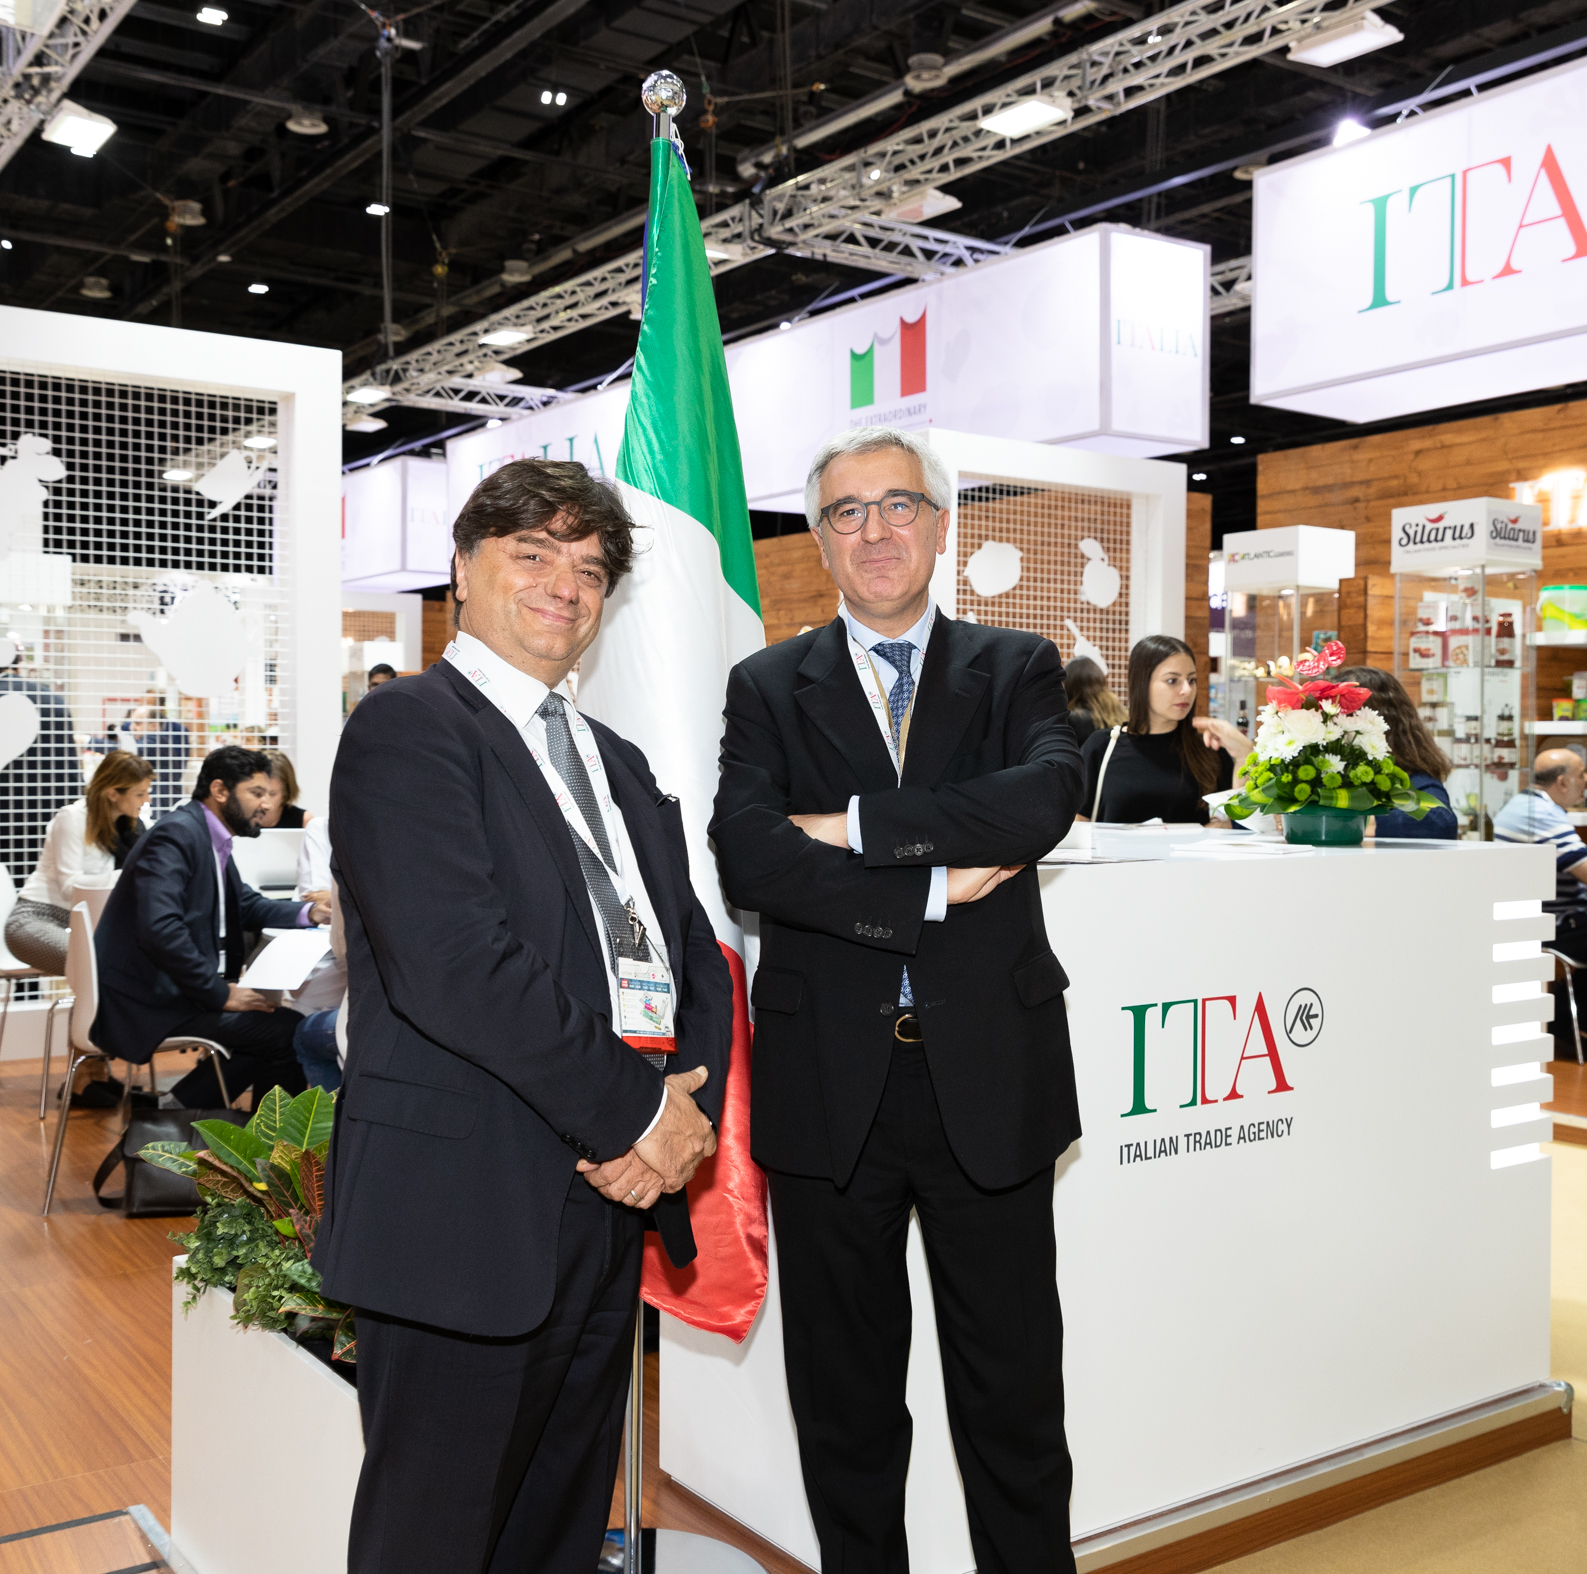 Meet Italian Chefs and Sample the Finest Italian Food Ingredients at the Speciality Food Festival